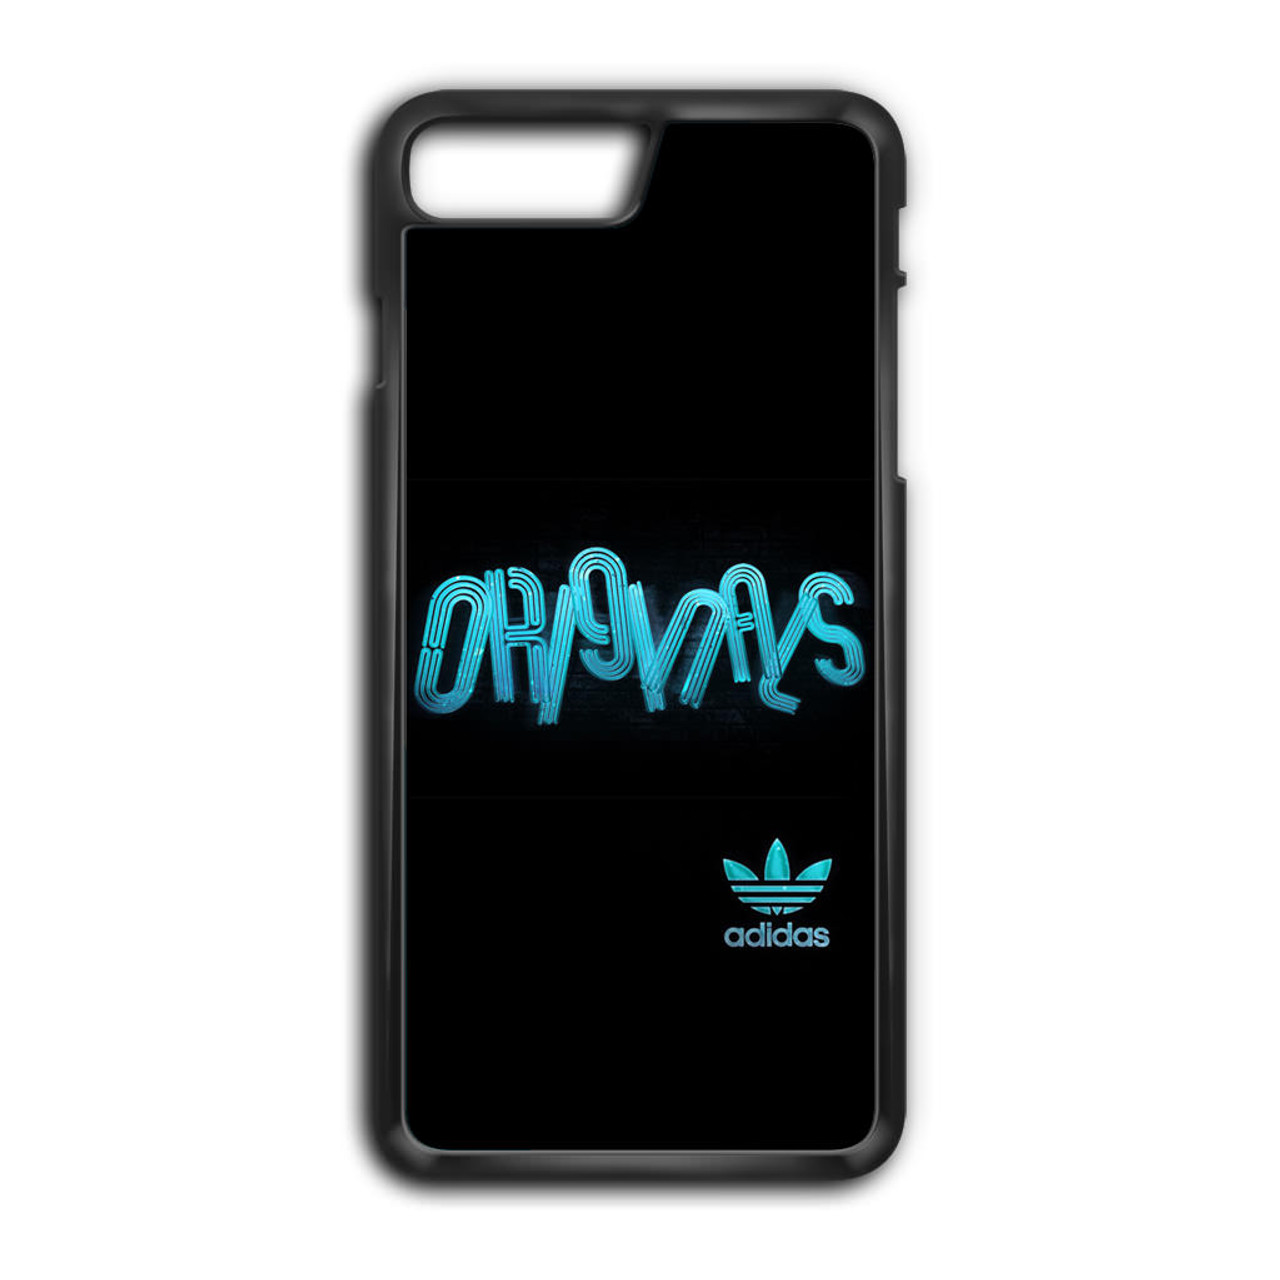 huge discount 67804 997ea Adidas Originals iPhone 7 Plus Case